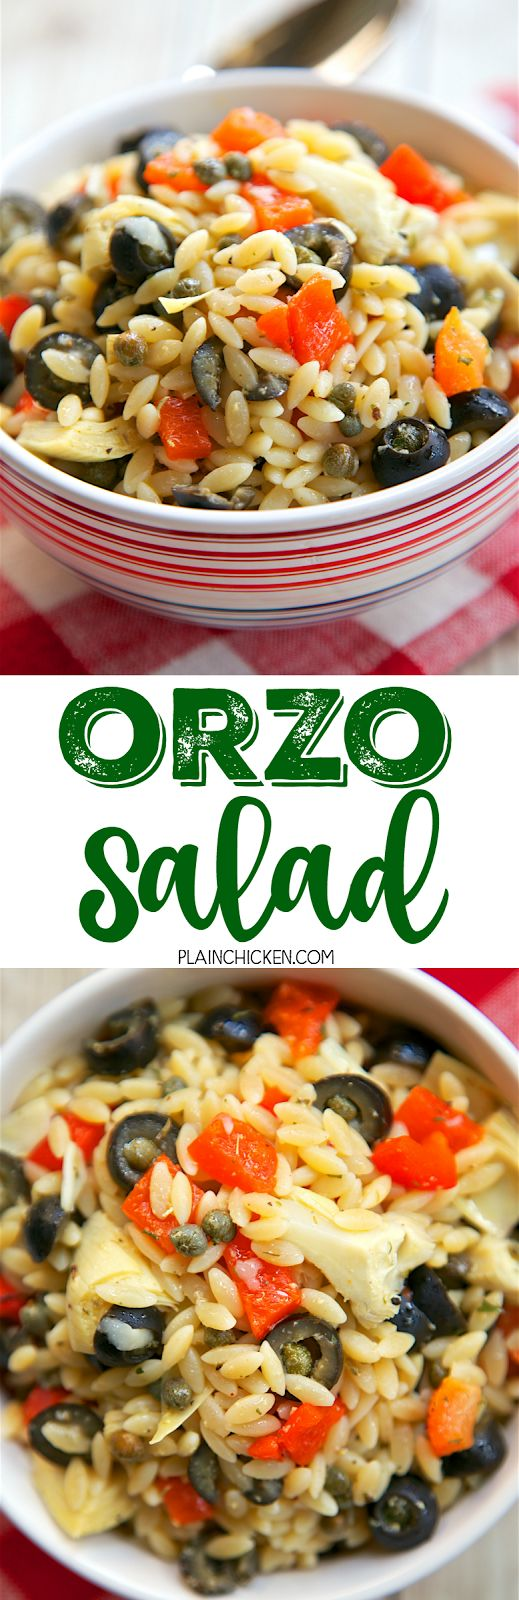 orzo salad salad reecipes salad days yummo salads healthy salads food ...